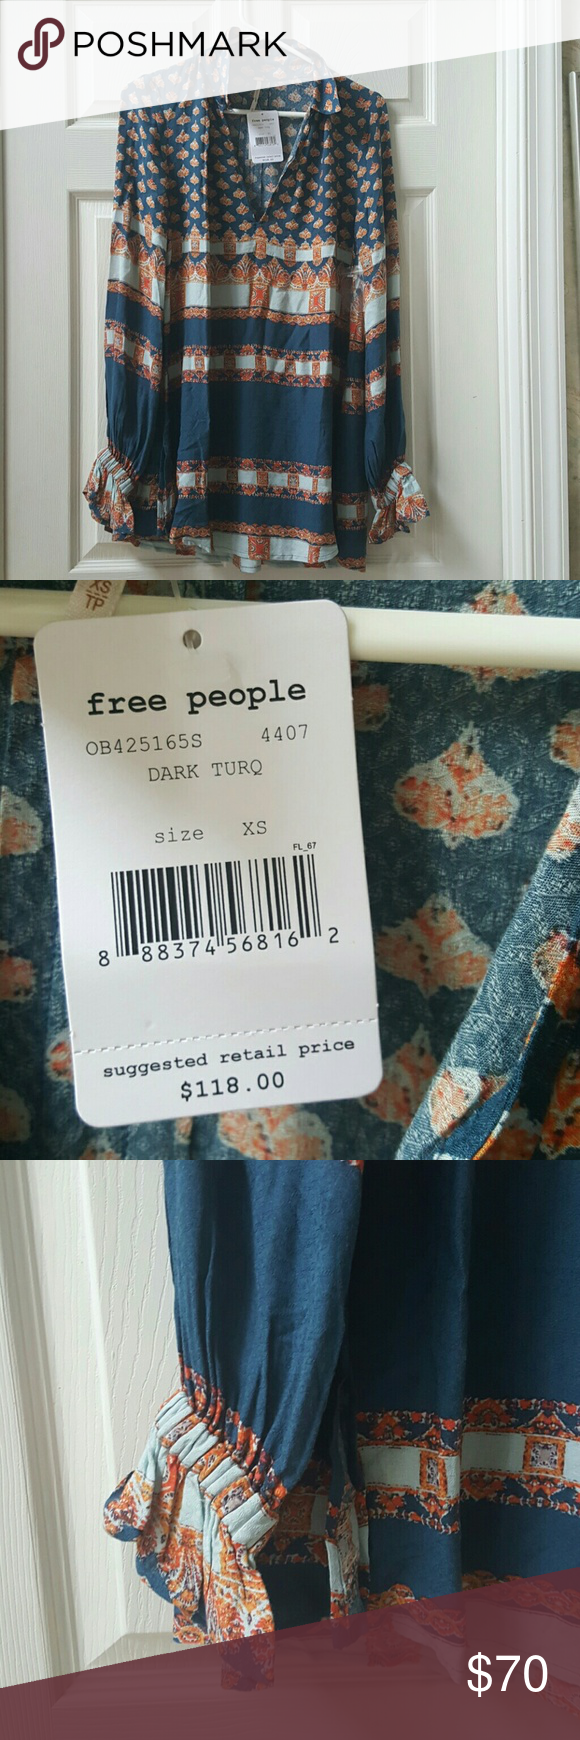 Free people tunic sz xs Brand new with tags  adorable , banded sleeves  at wrist with flair. Hate to part , but can only wear so many, price is firm and yet still a steal Free People Dresses